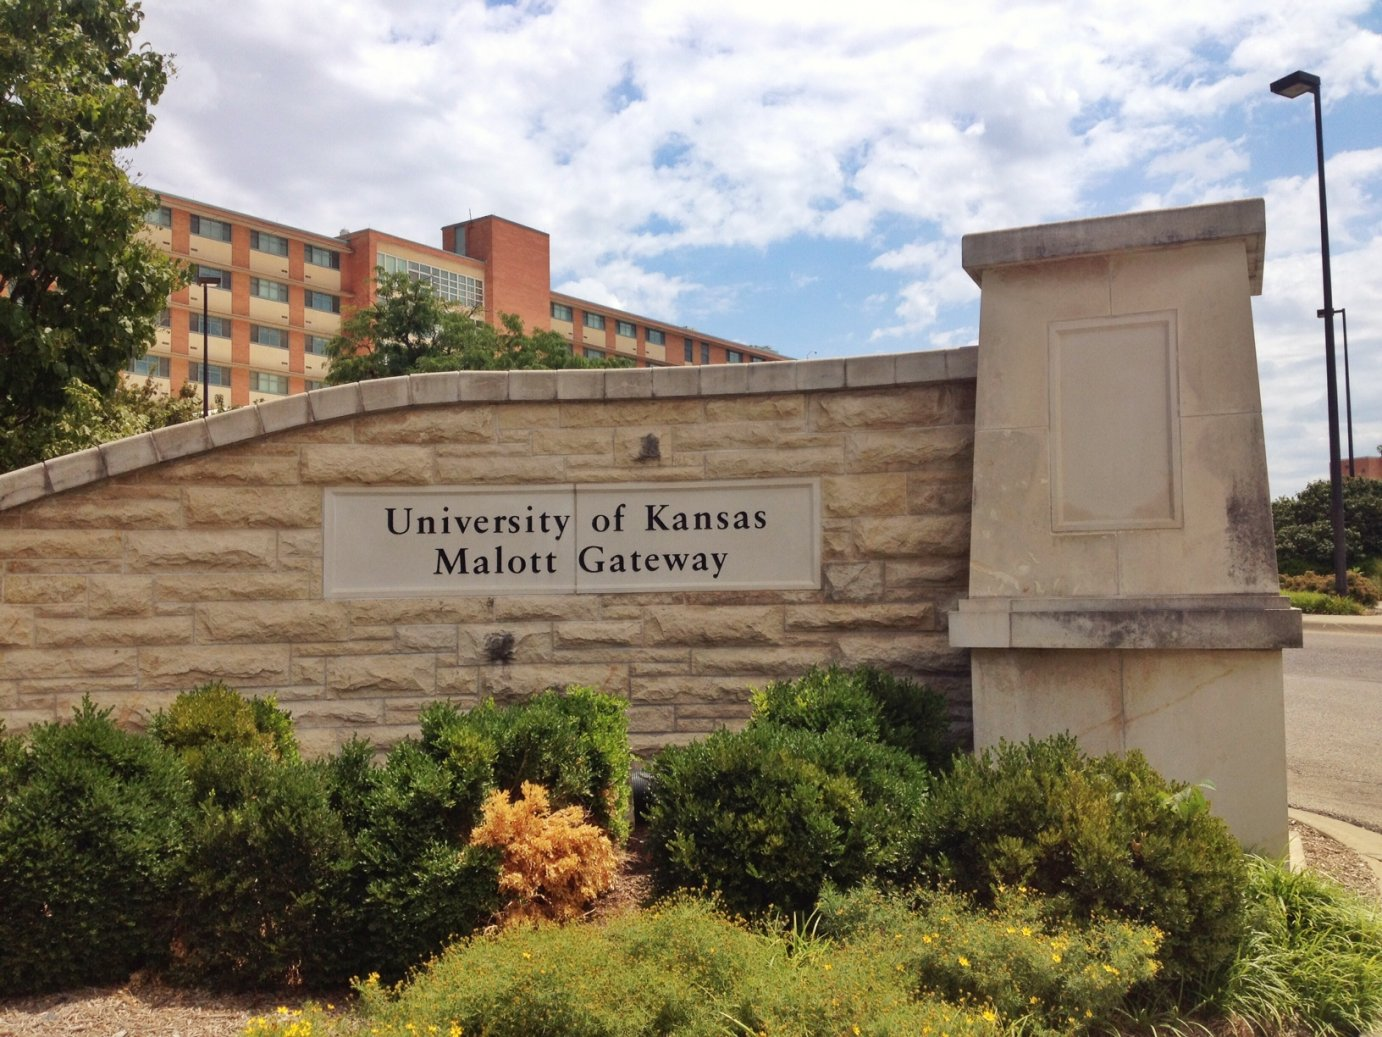 Western gateway to the University of Kansas (Photo by J. Schafer)